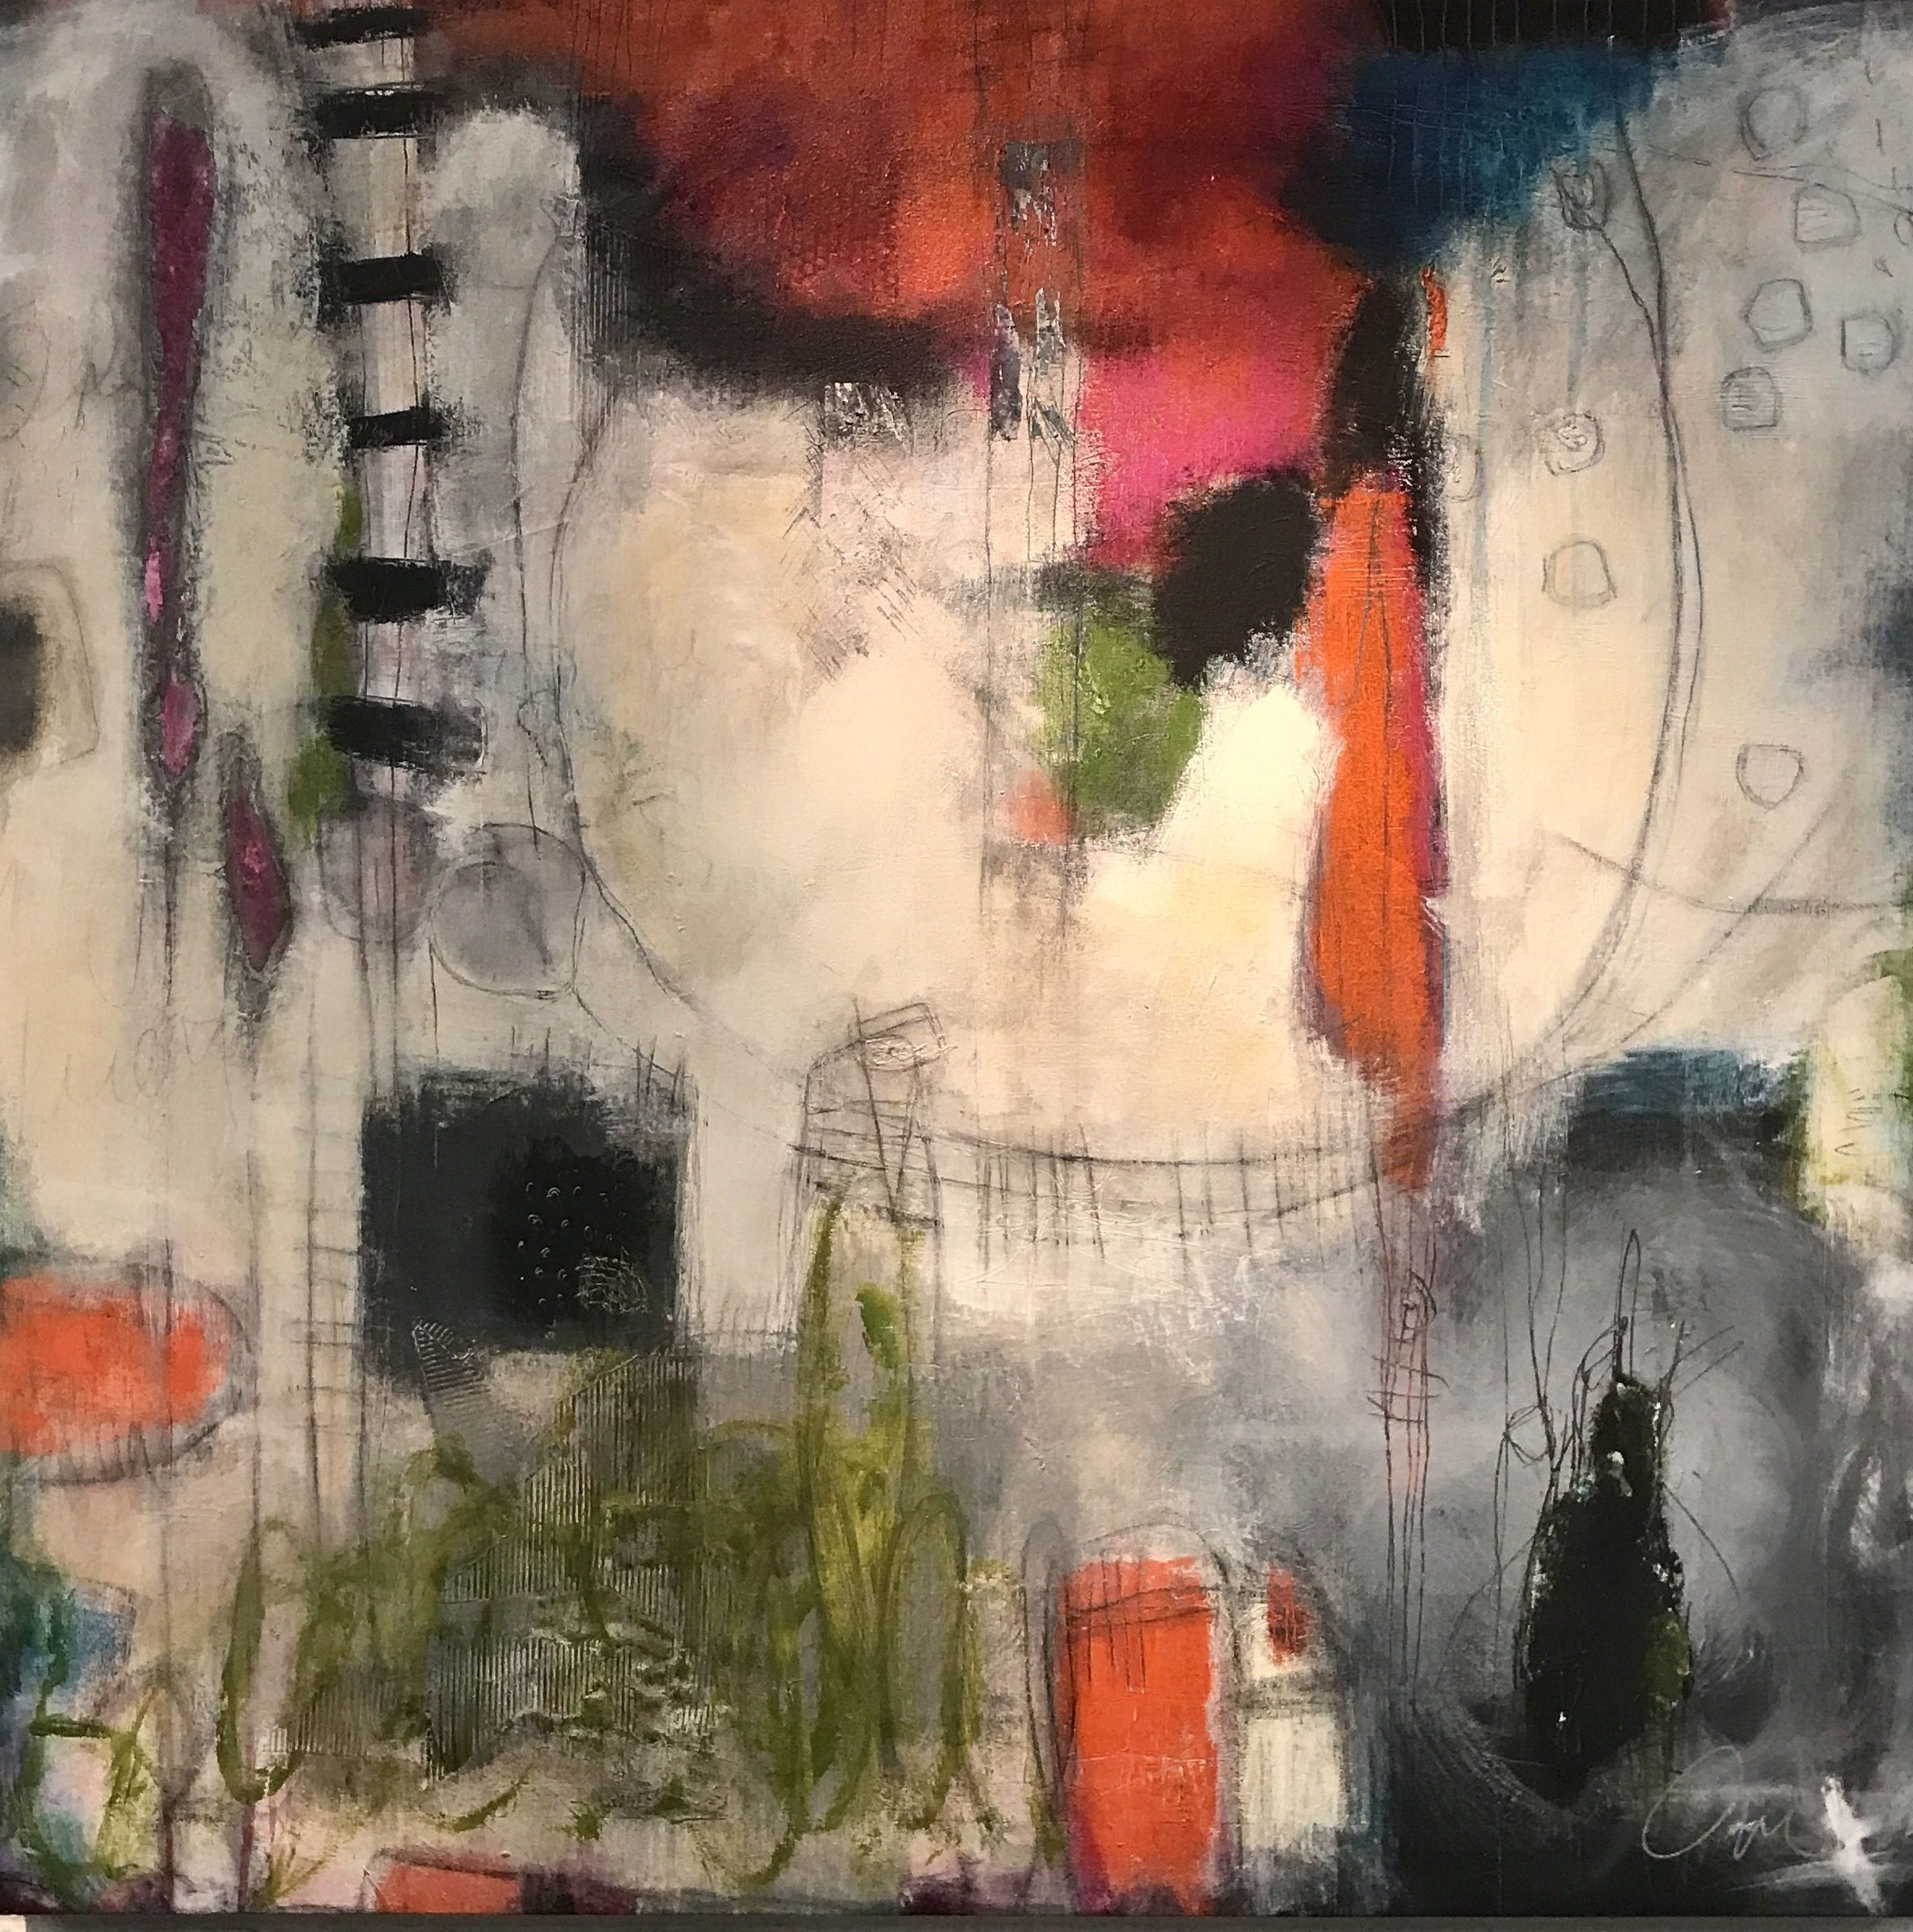 Abstract mixed media painting titled The Ferris Wheel of Life by artist and painter Ann Golumbuk